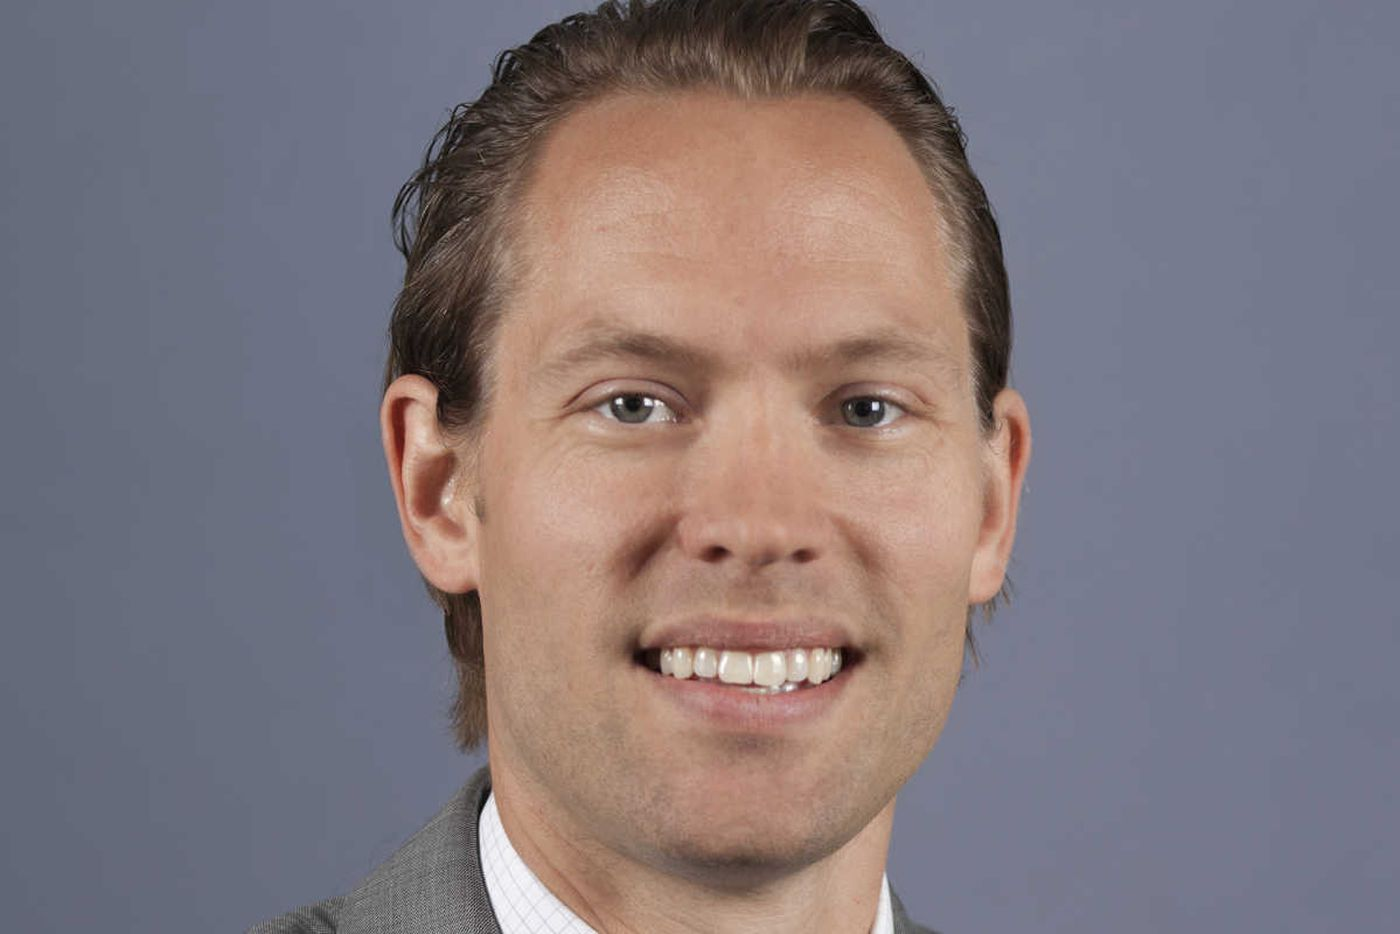 Jon S. Akins, 36, scientist with a career dedicated to helping the disabled